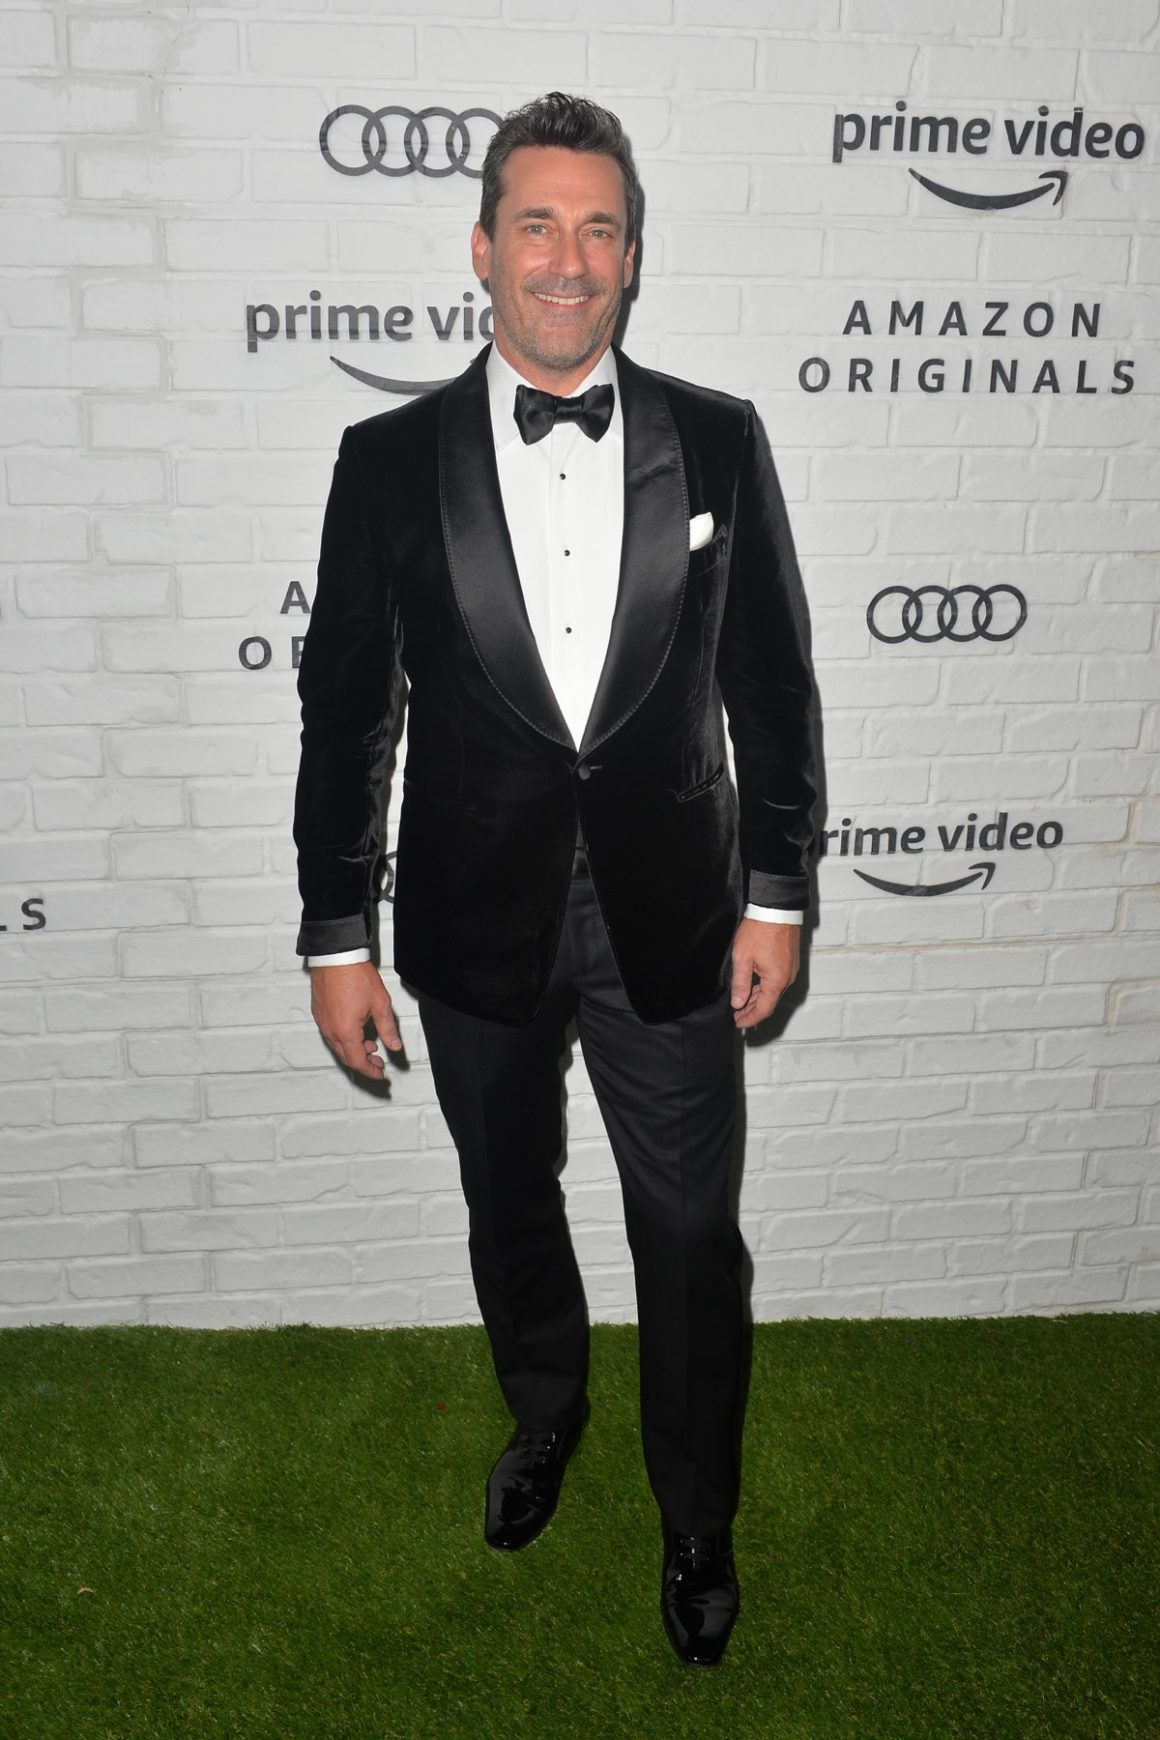 Amazon Prime Video Post Emmy Awards Party 2019 - Arrivals